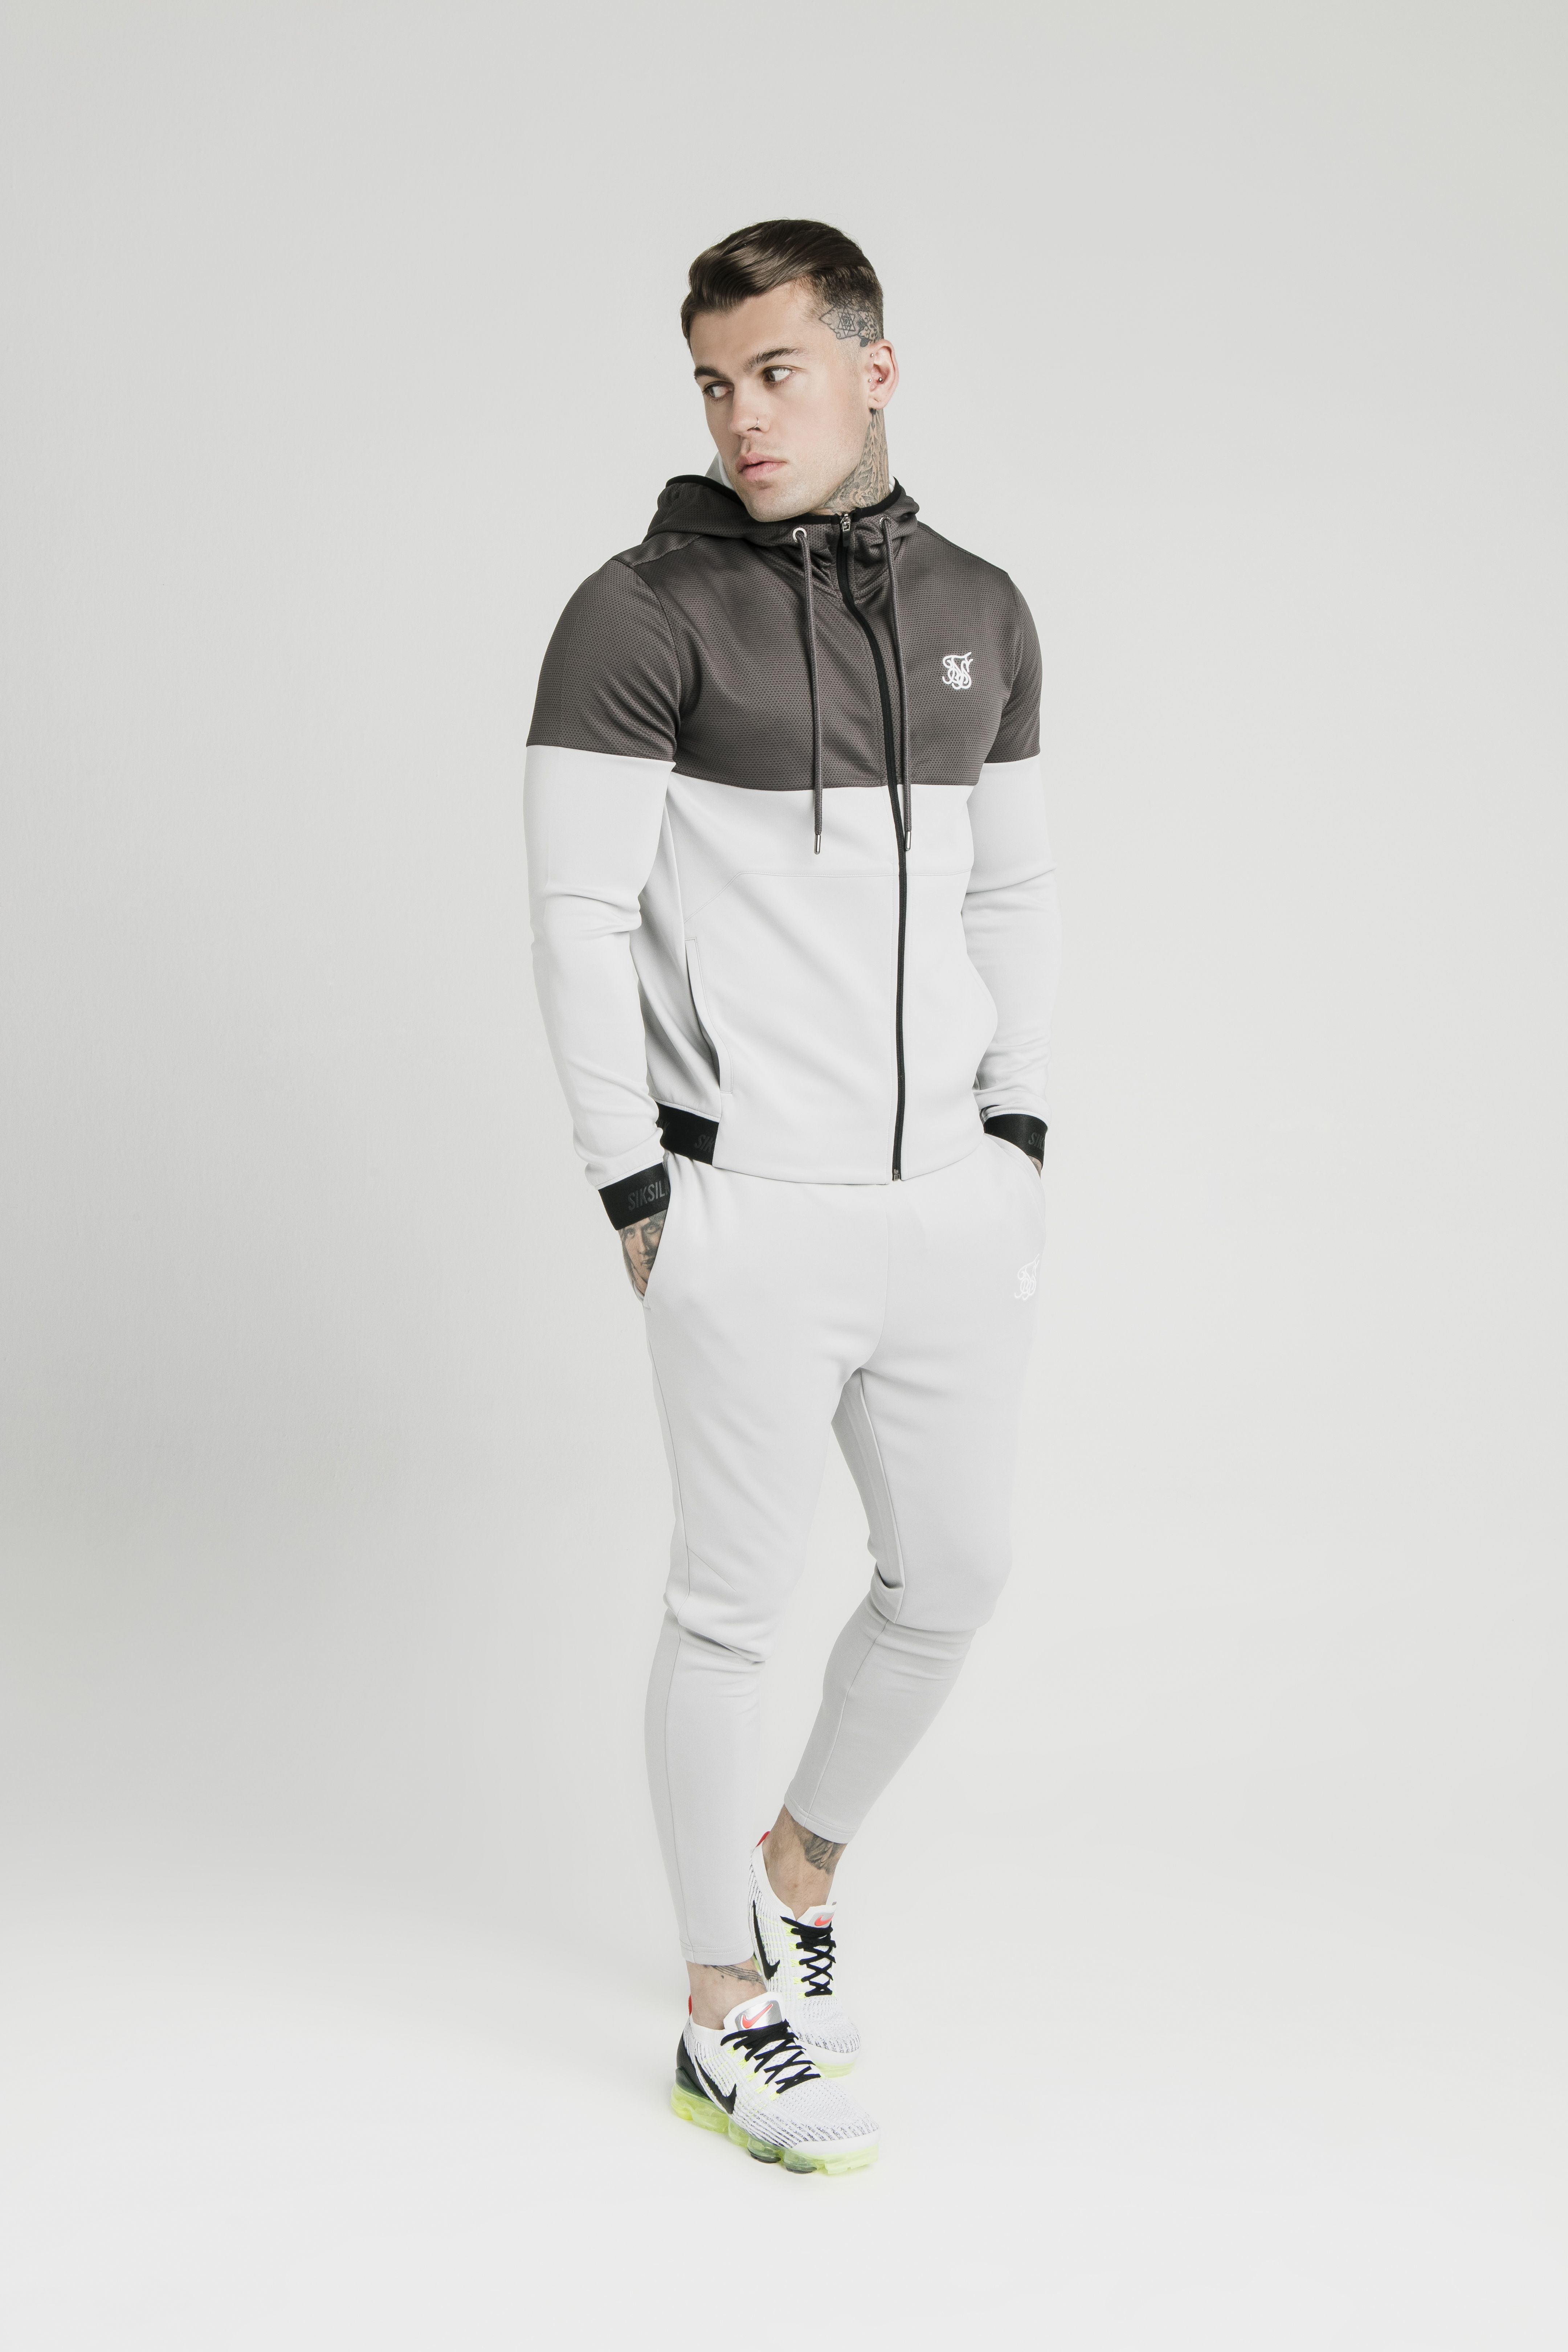 Colour Block Agility Anthracite & Ice Grey Mens winter